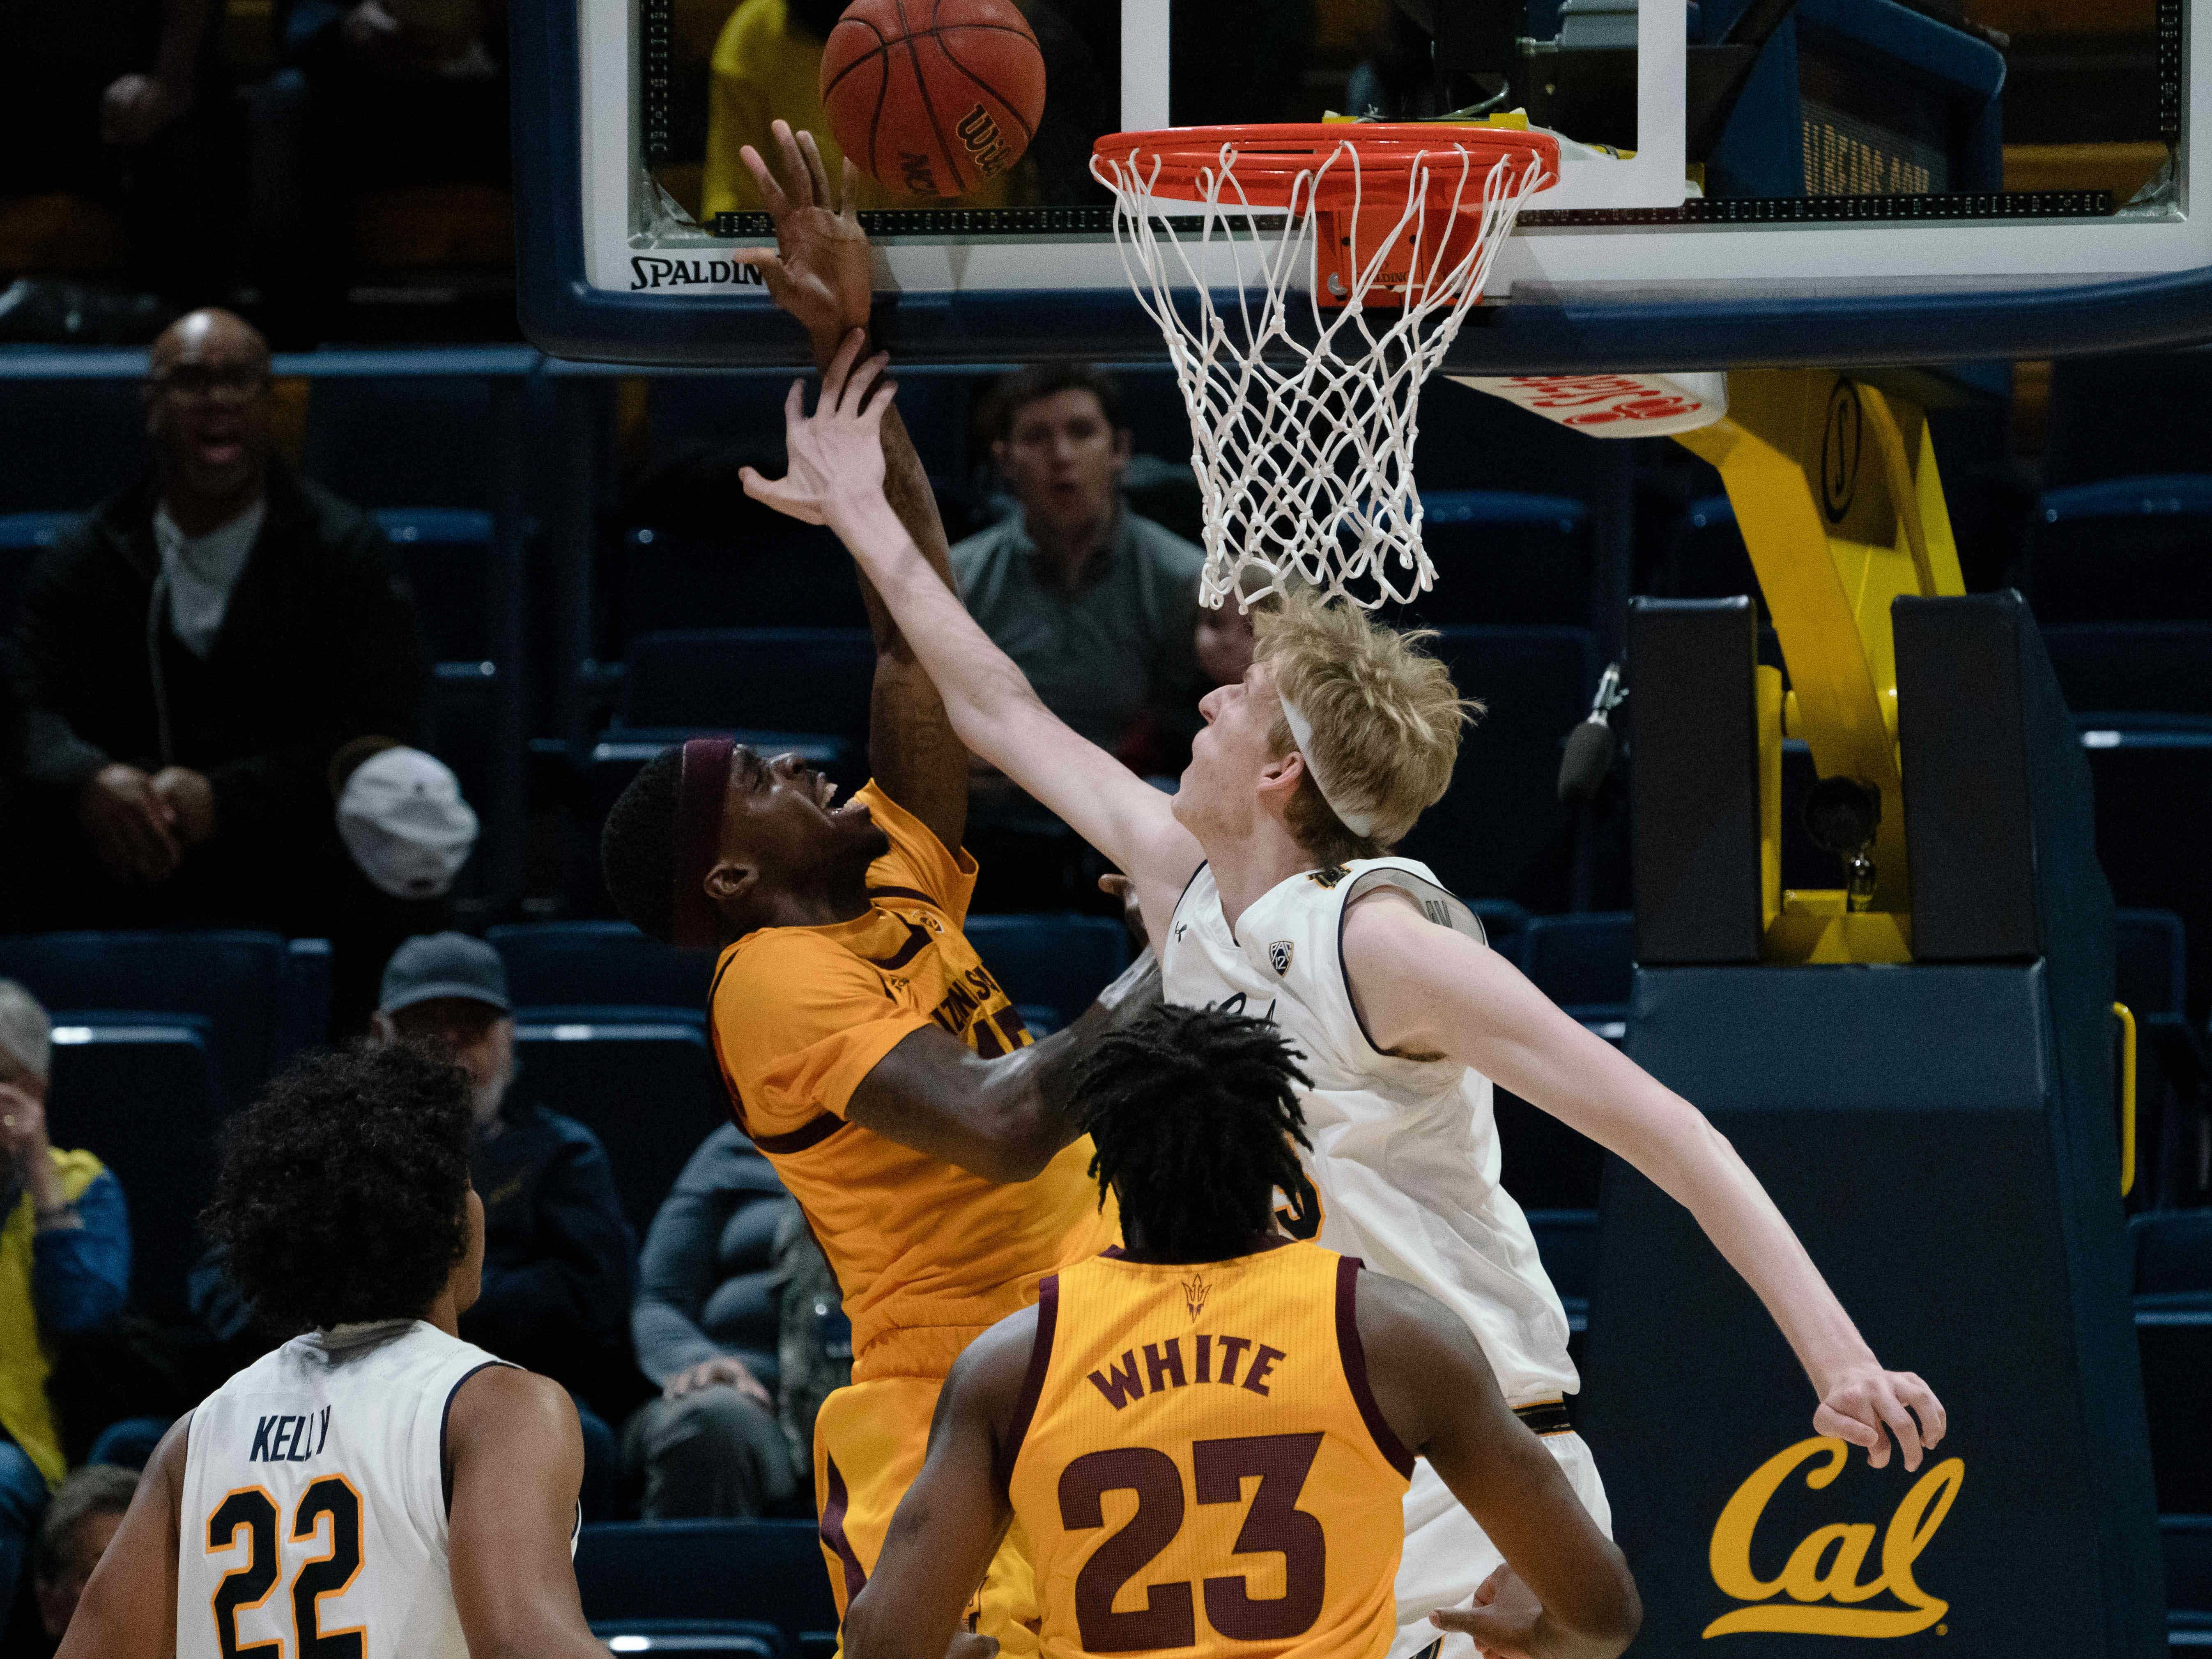 Jan 9, 2019; Berkeley, CA, USA; Arizona State Sun Devils forward Zylan Cheatham (45) shoots the basketball against California Golden Bears center Connor Vanover (23) during the first half at Haas Pavilion. Mandatory Credit: Neville E. Guard-USA TODAY Sports